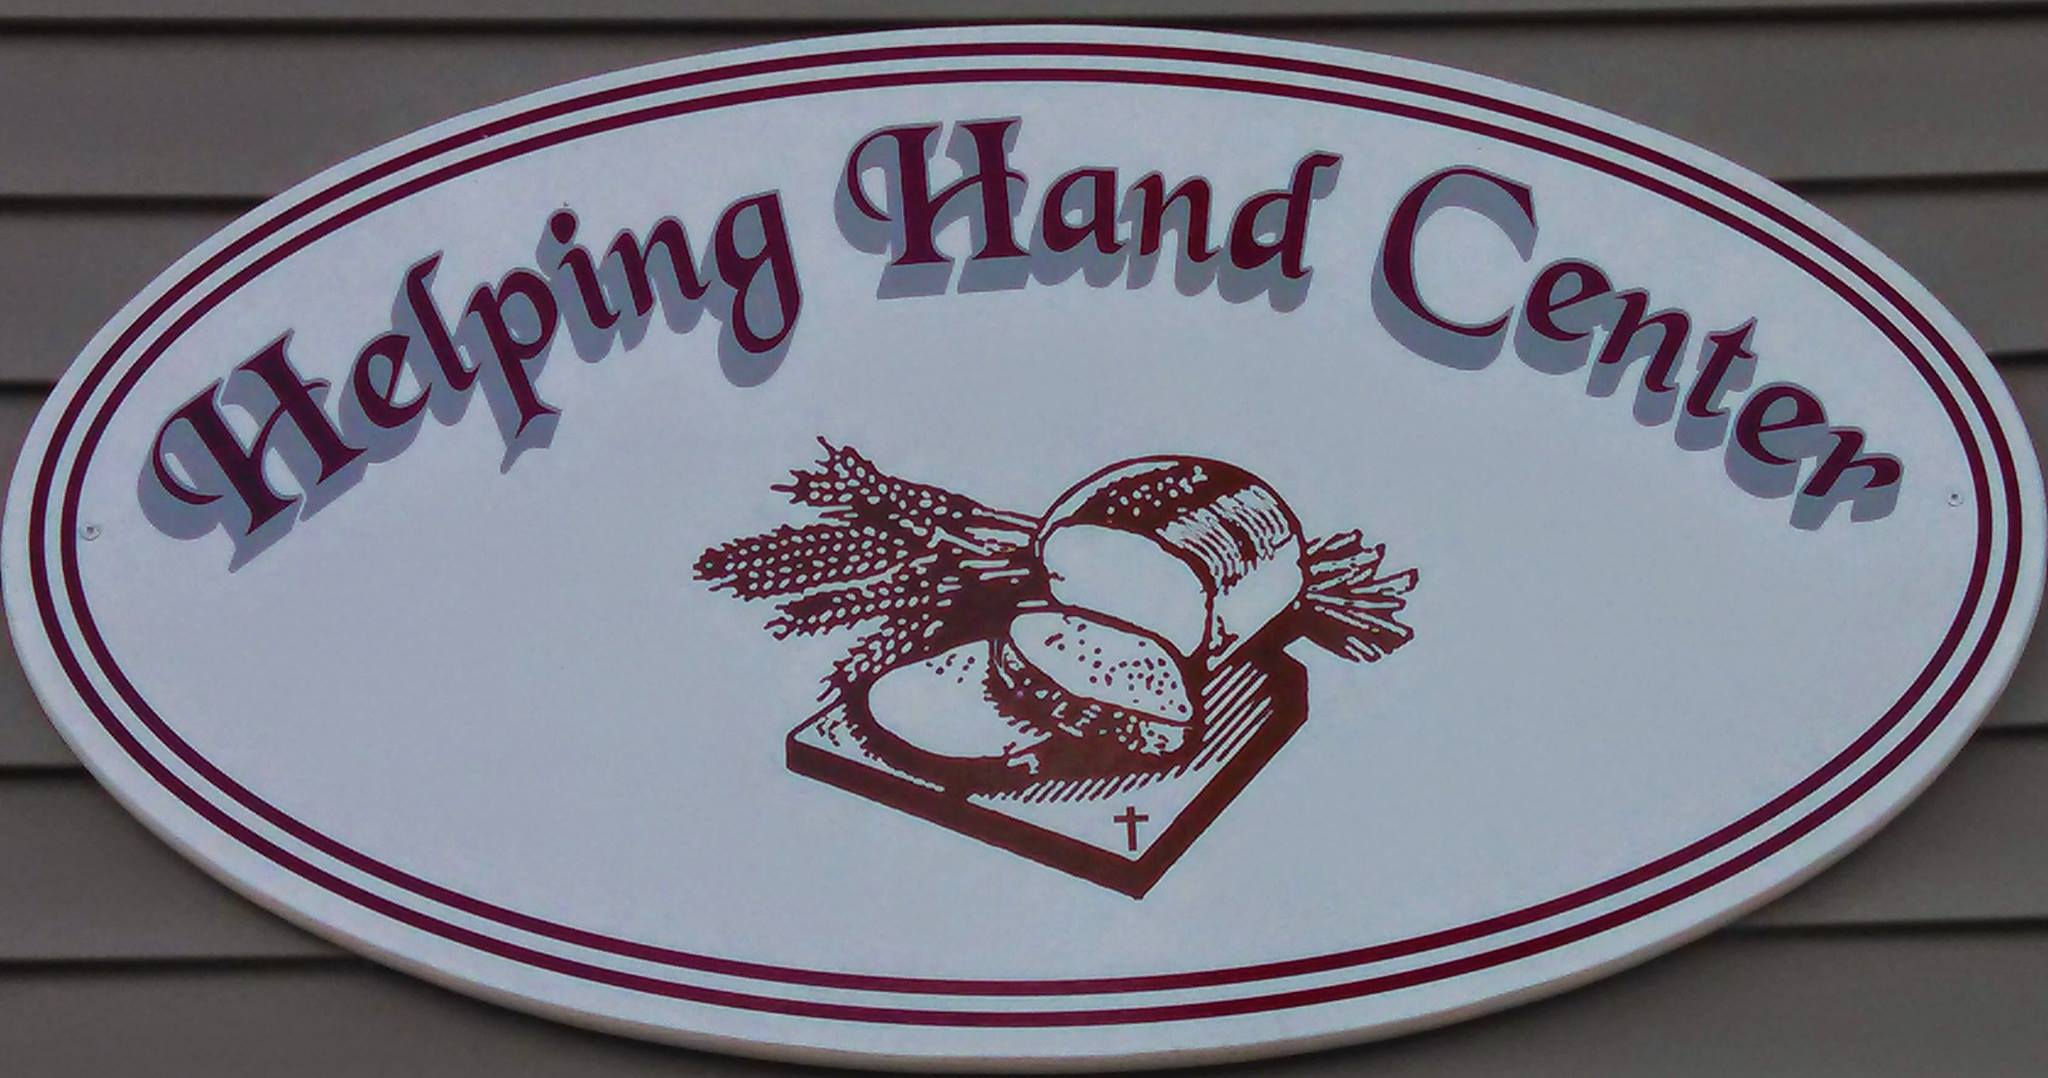 The Helping Hand Center Food Pantry